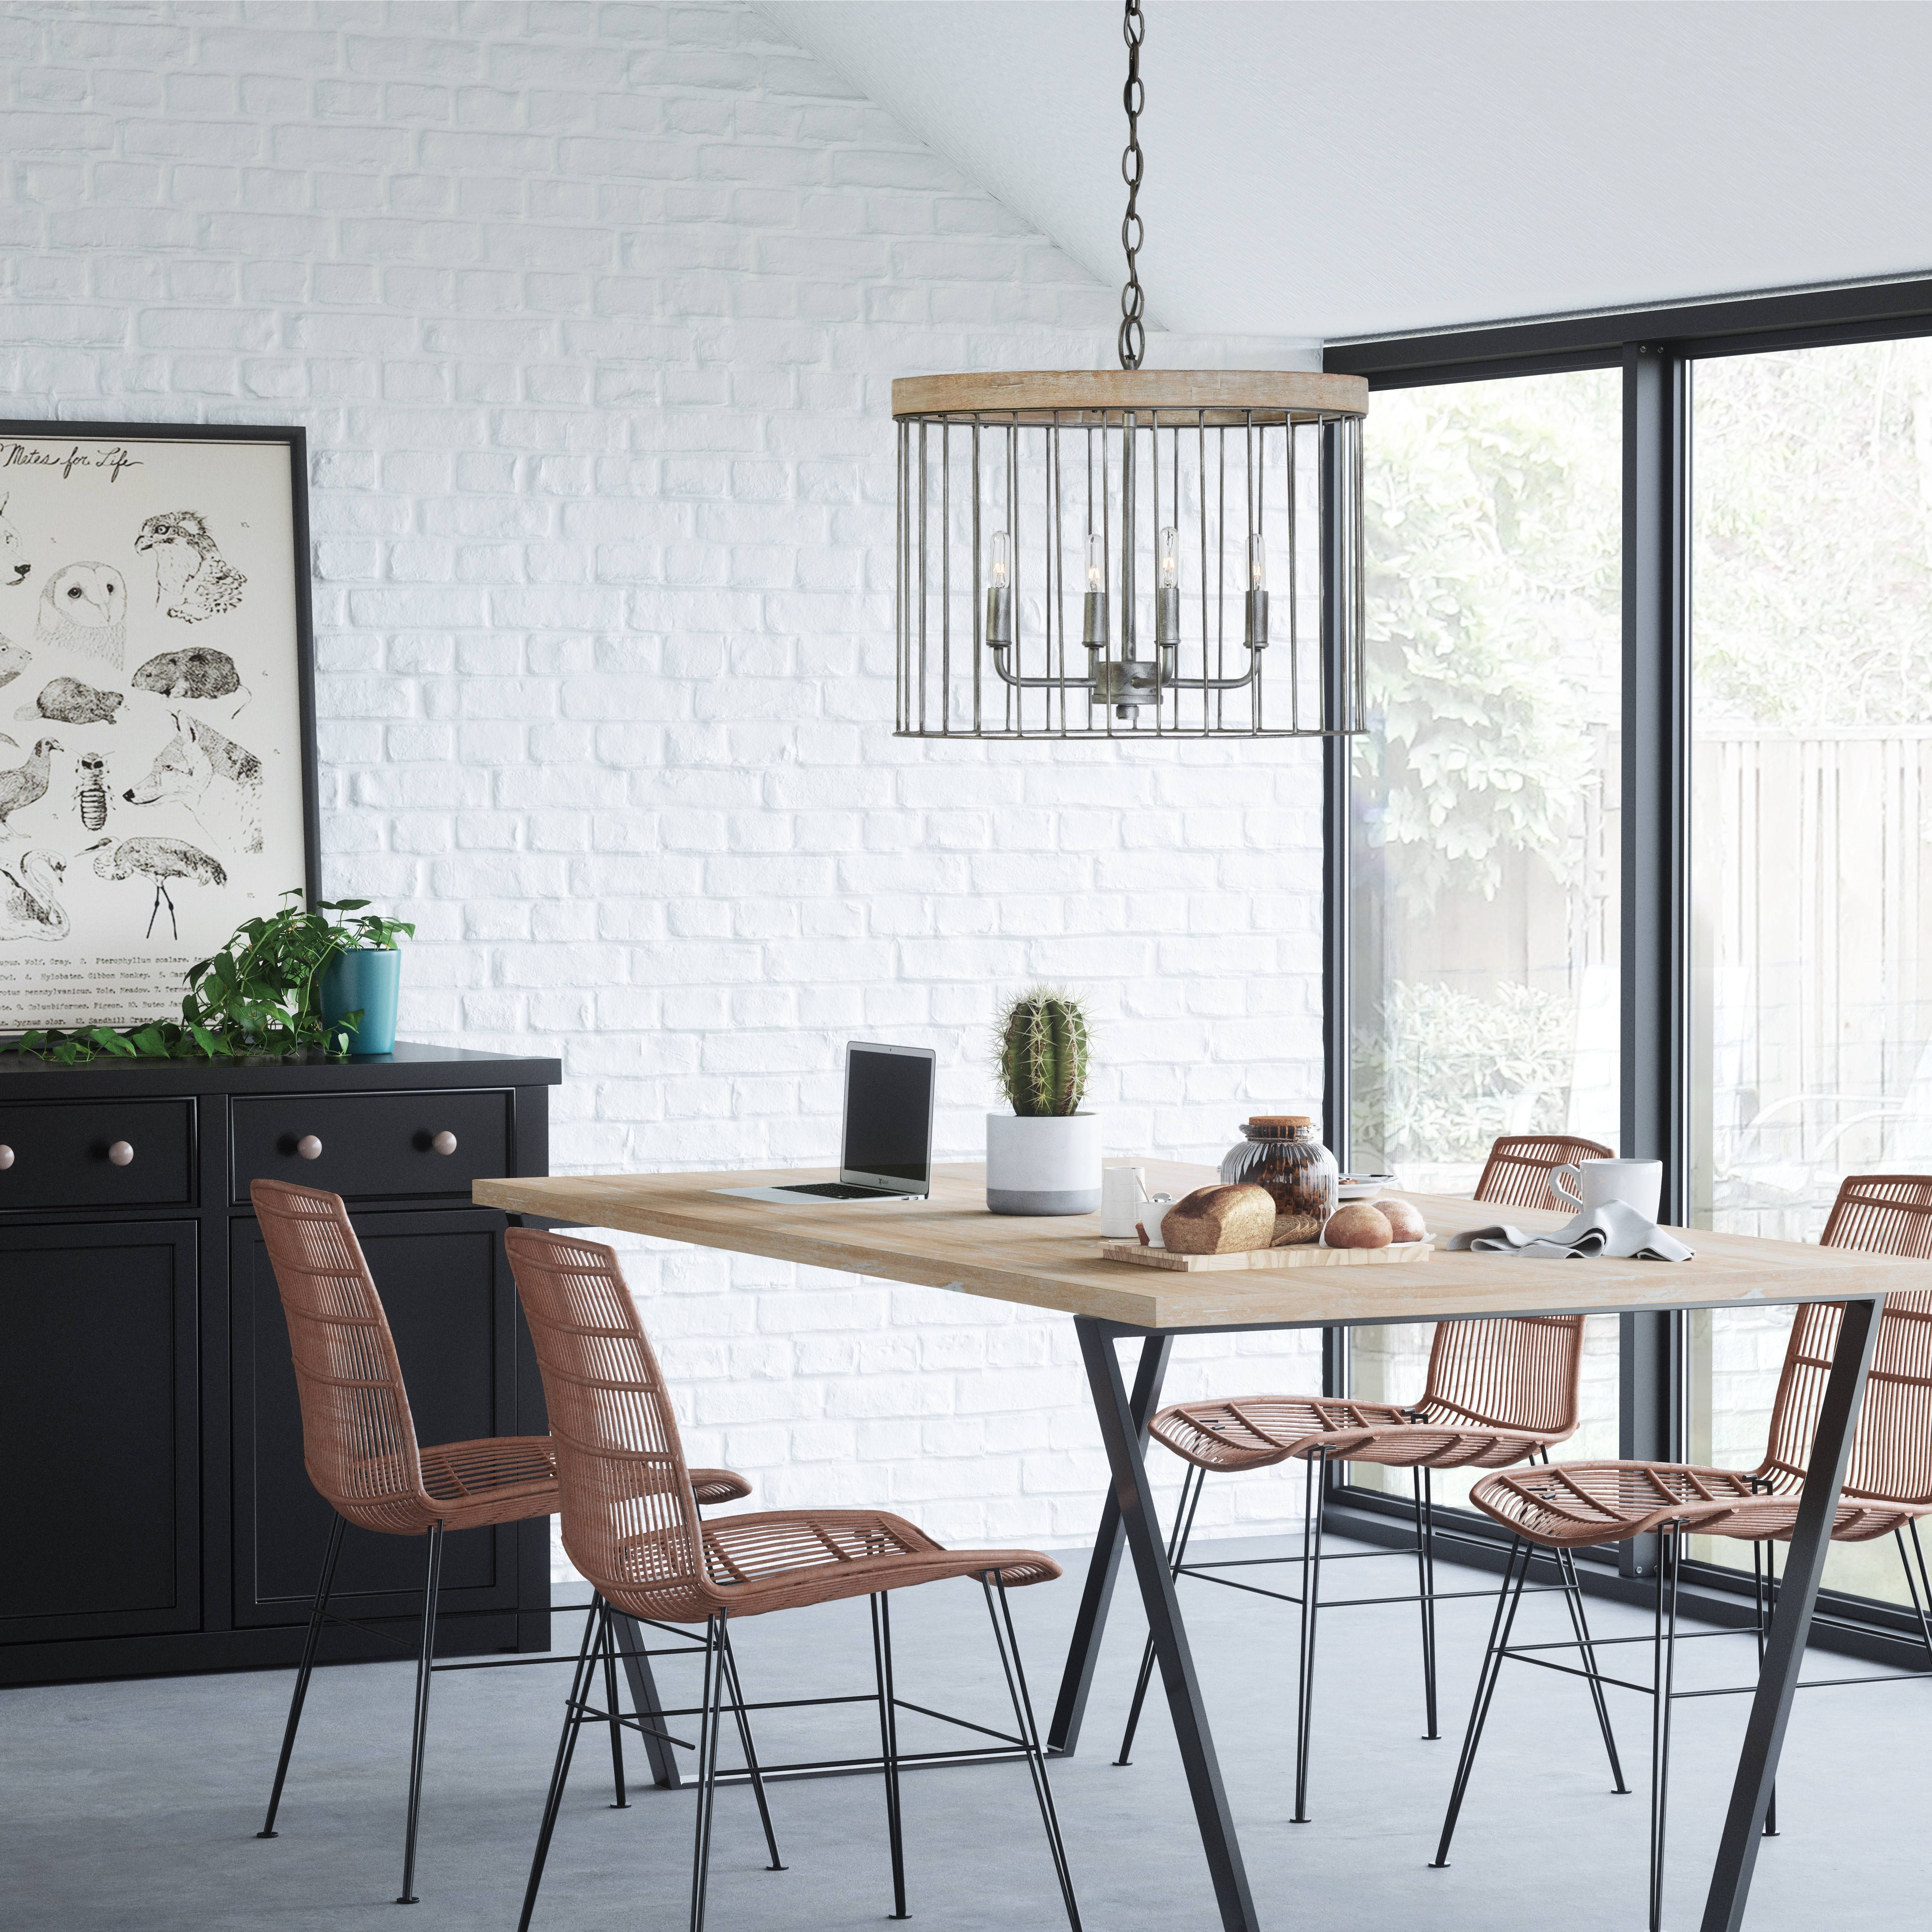 This coastal / Hamptonsstyle pendant light features in a